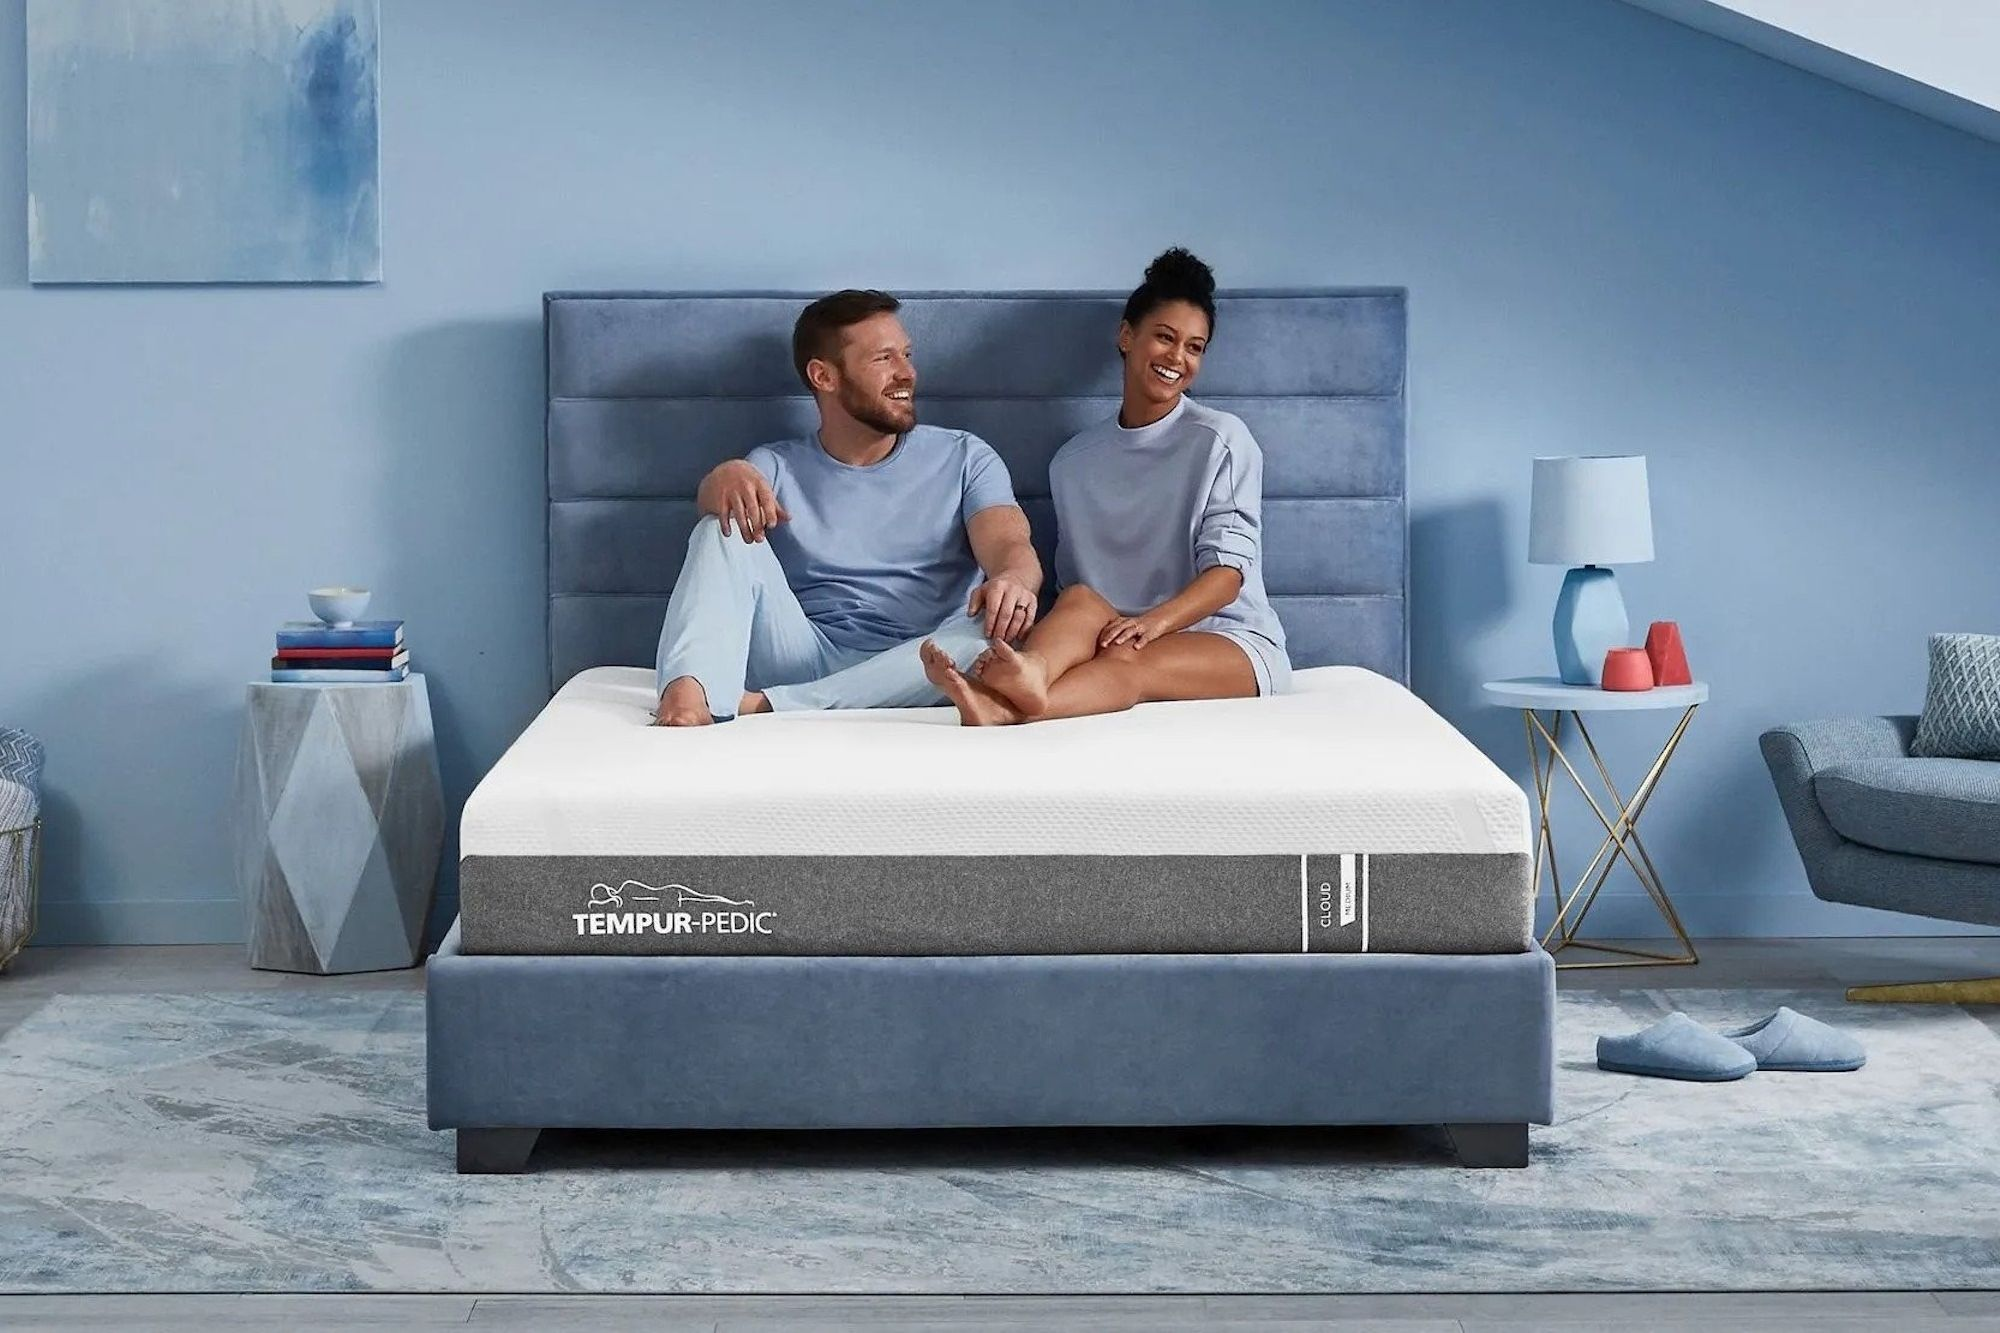 Get Better Sleep with Help From This Tempur-Pedic Sale